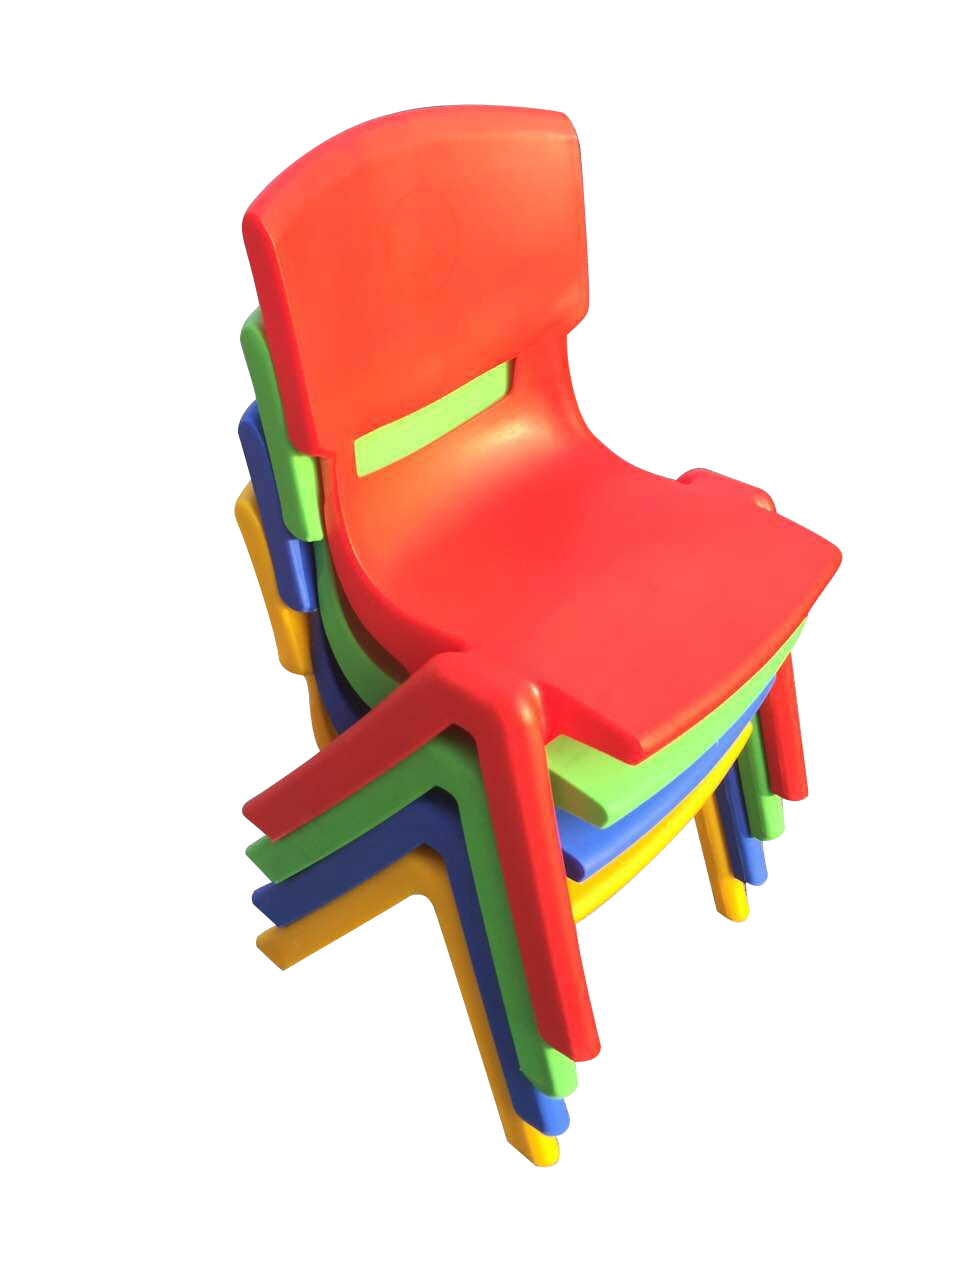 SET OF 4 COLOURED CHILDRENS CHAIRS FOR CHILDRENS TABLE HOLDS UP TO 100KG